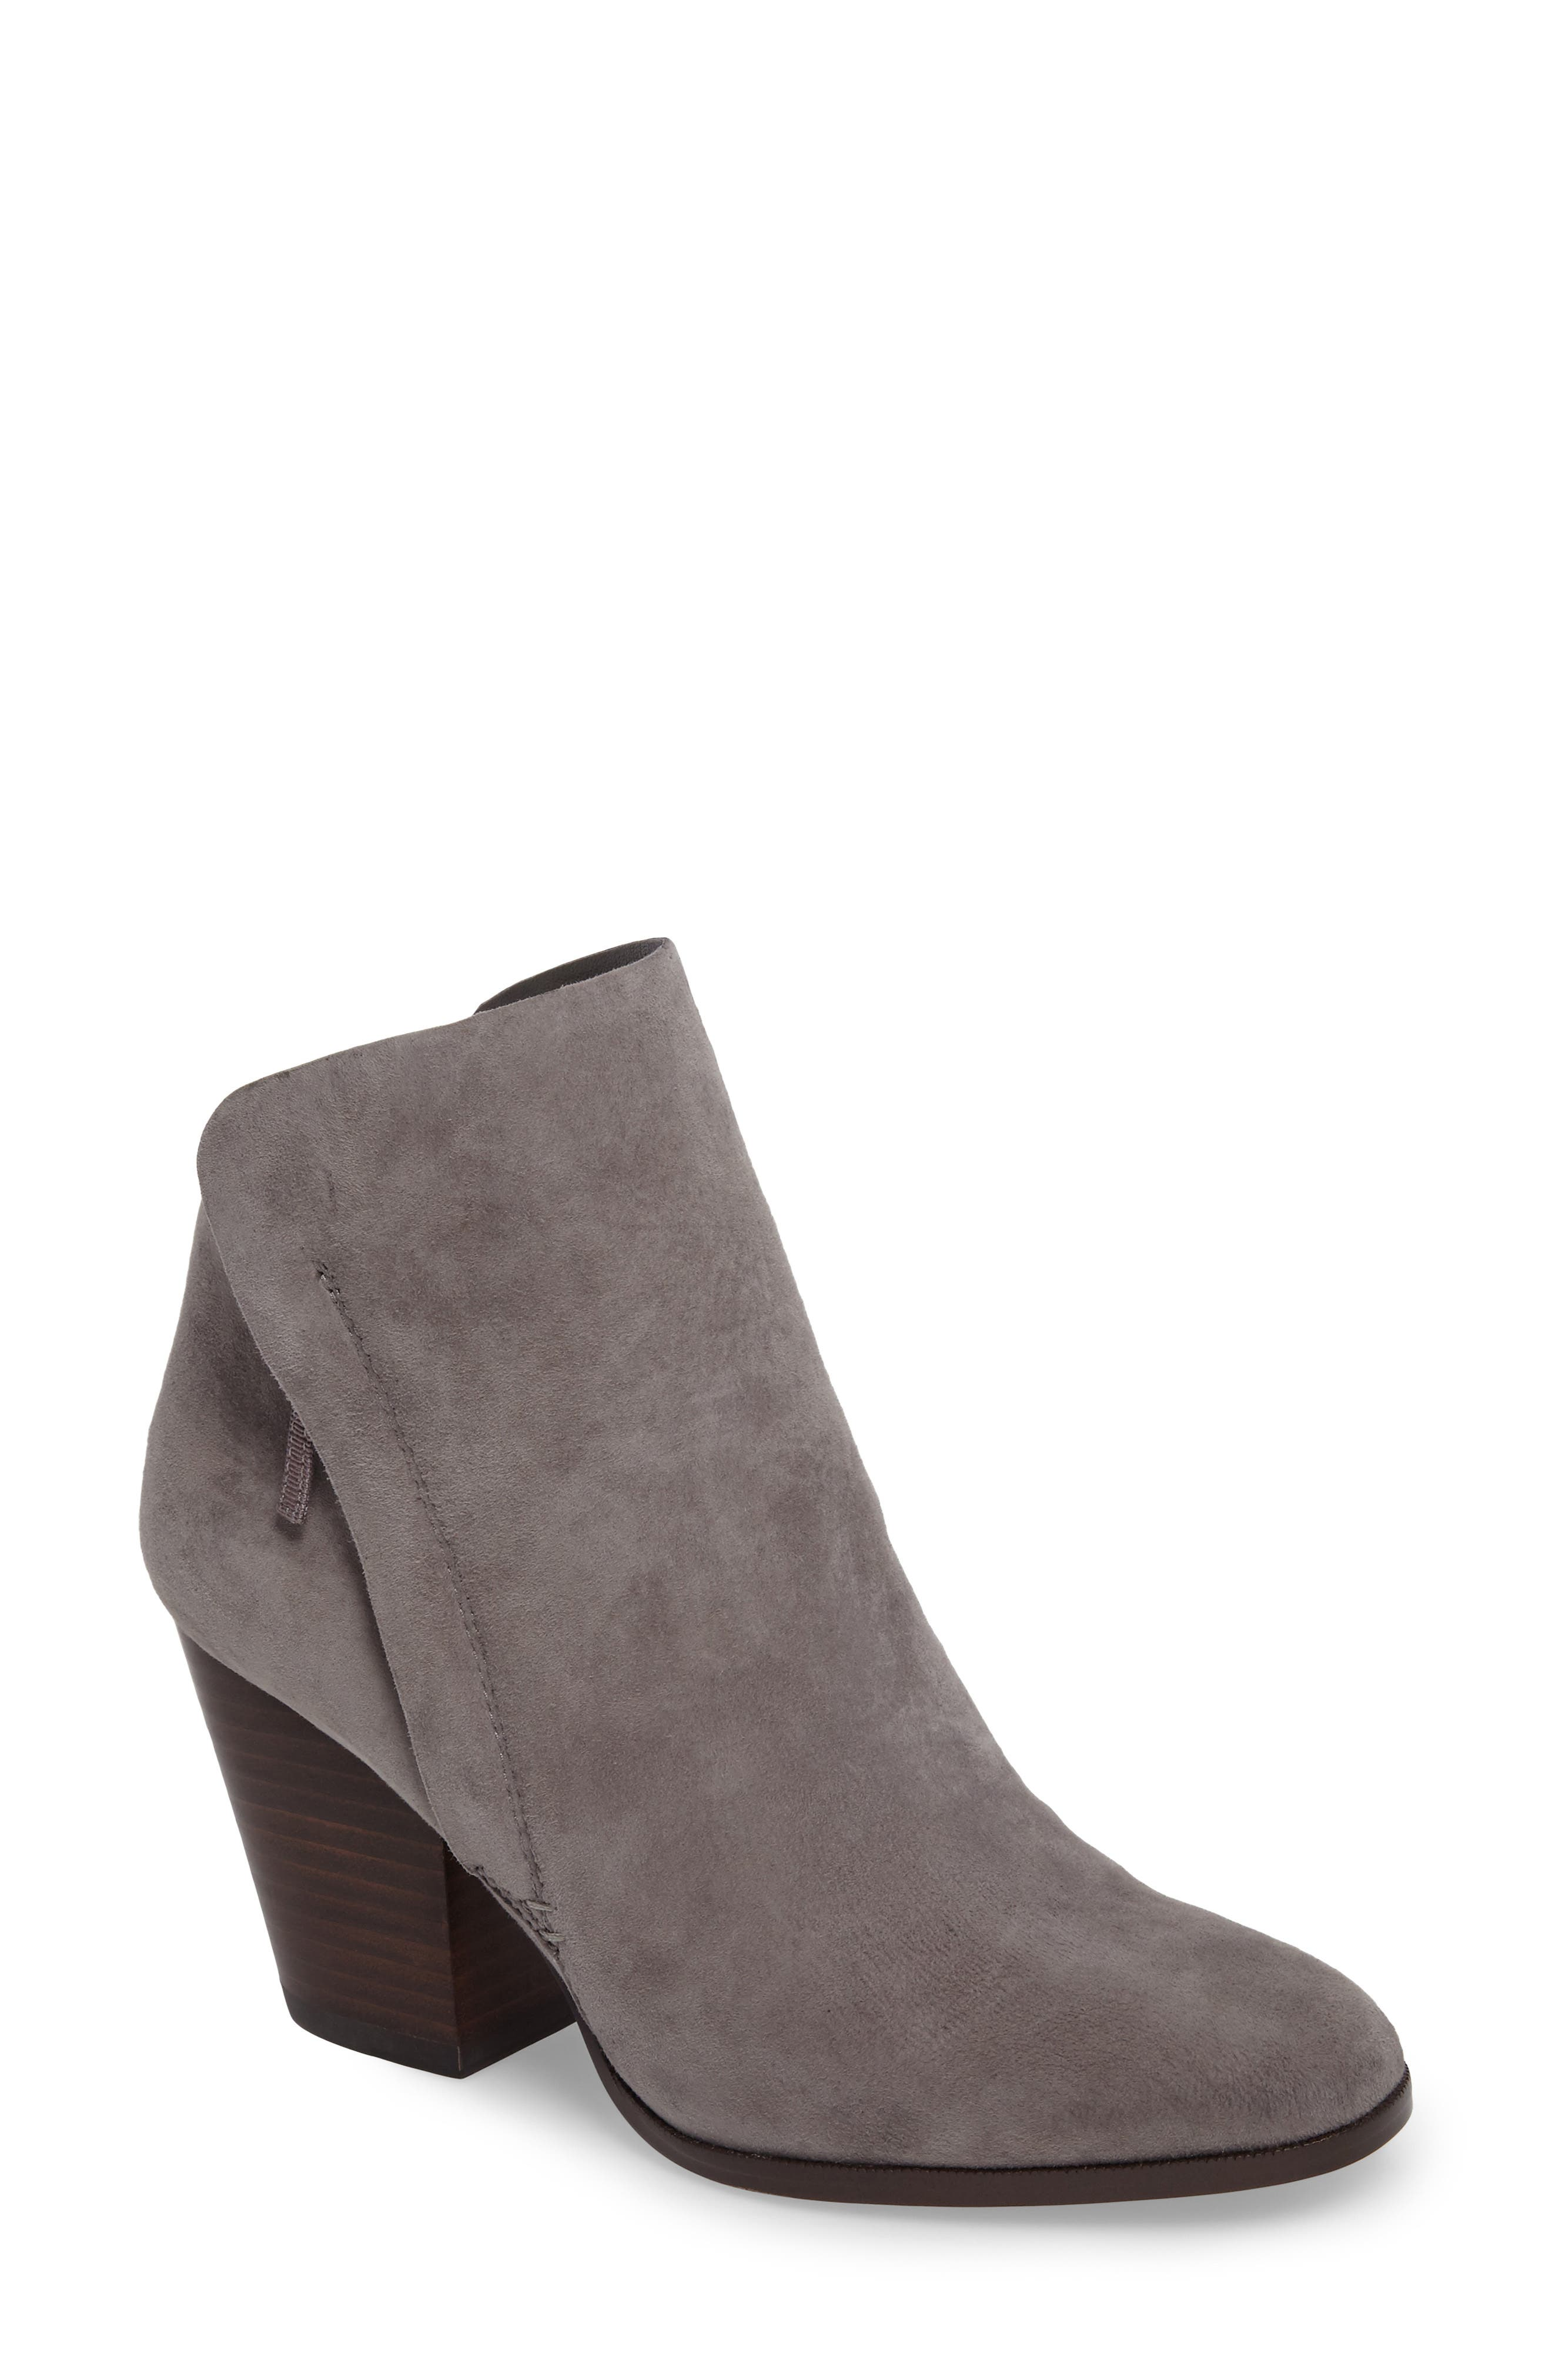 Alternate Image 1 Selected - 1.STATE Taila Angle Zip Bootie (Women)